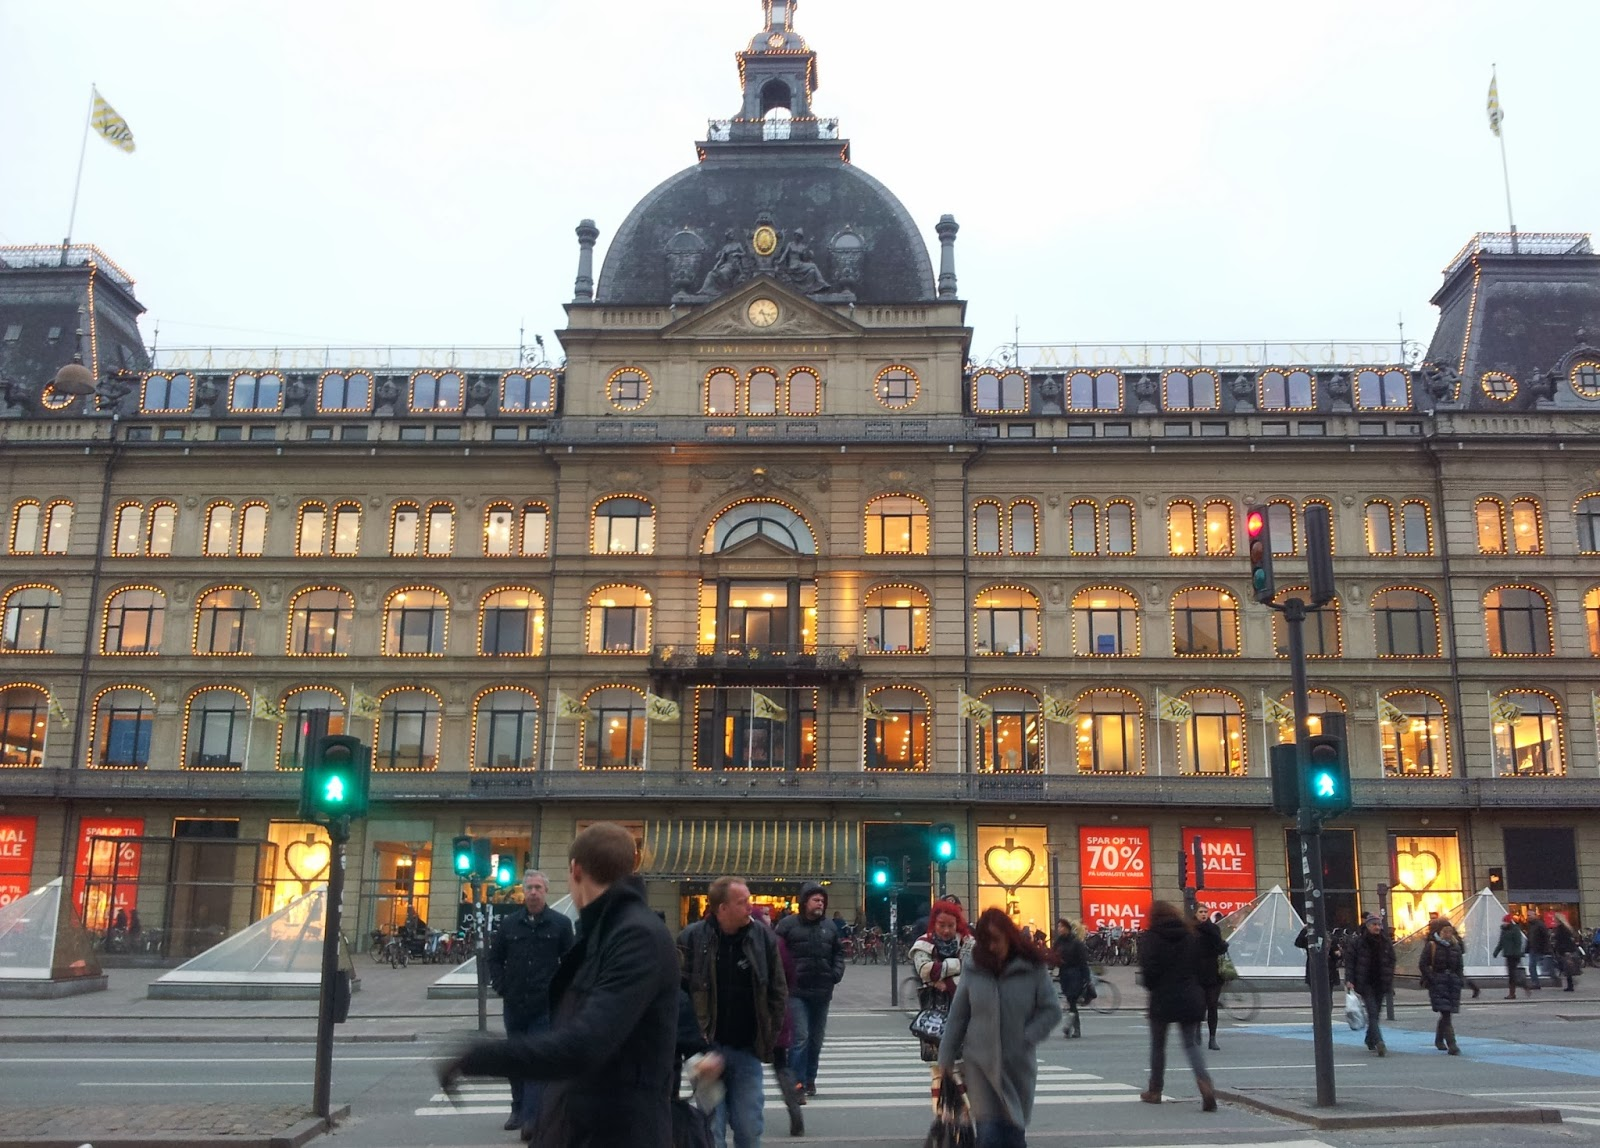 Magasin department store in Copenhagen